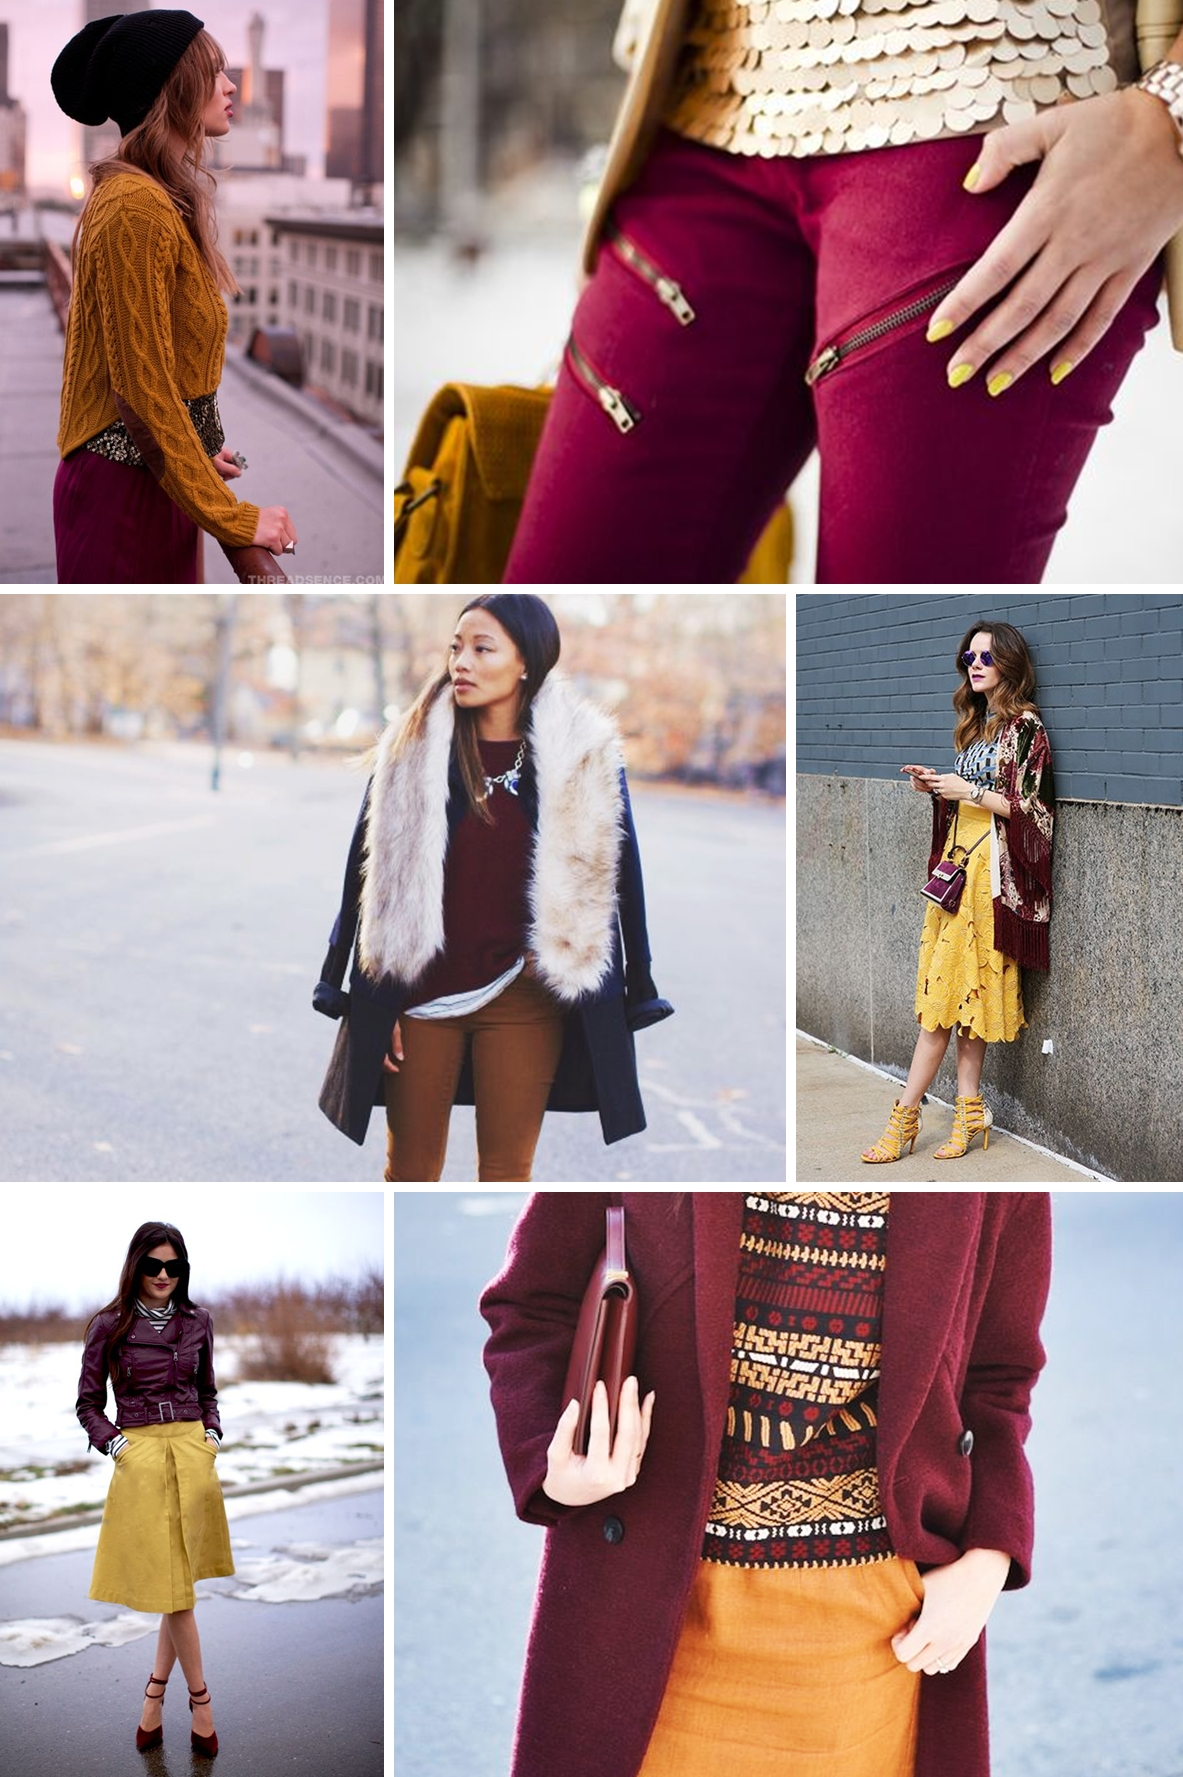 colours burgundy and mustard